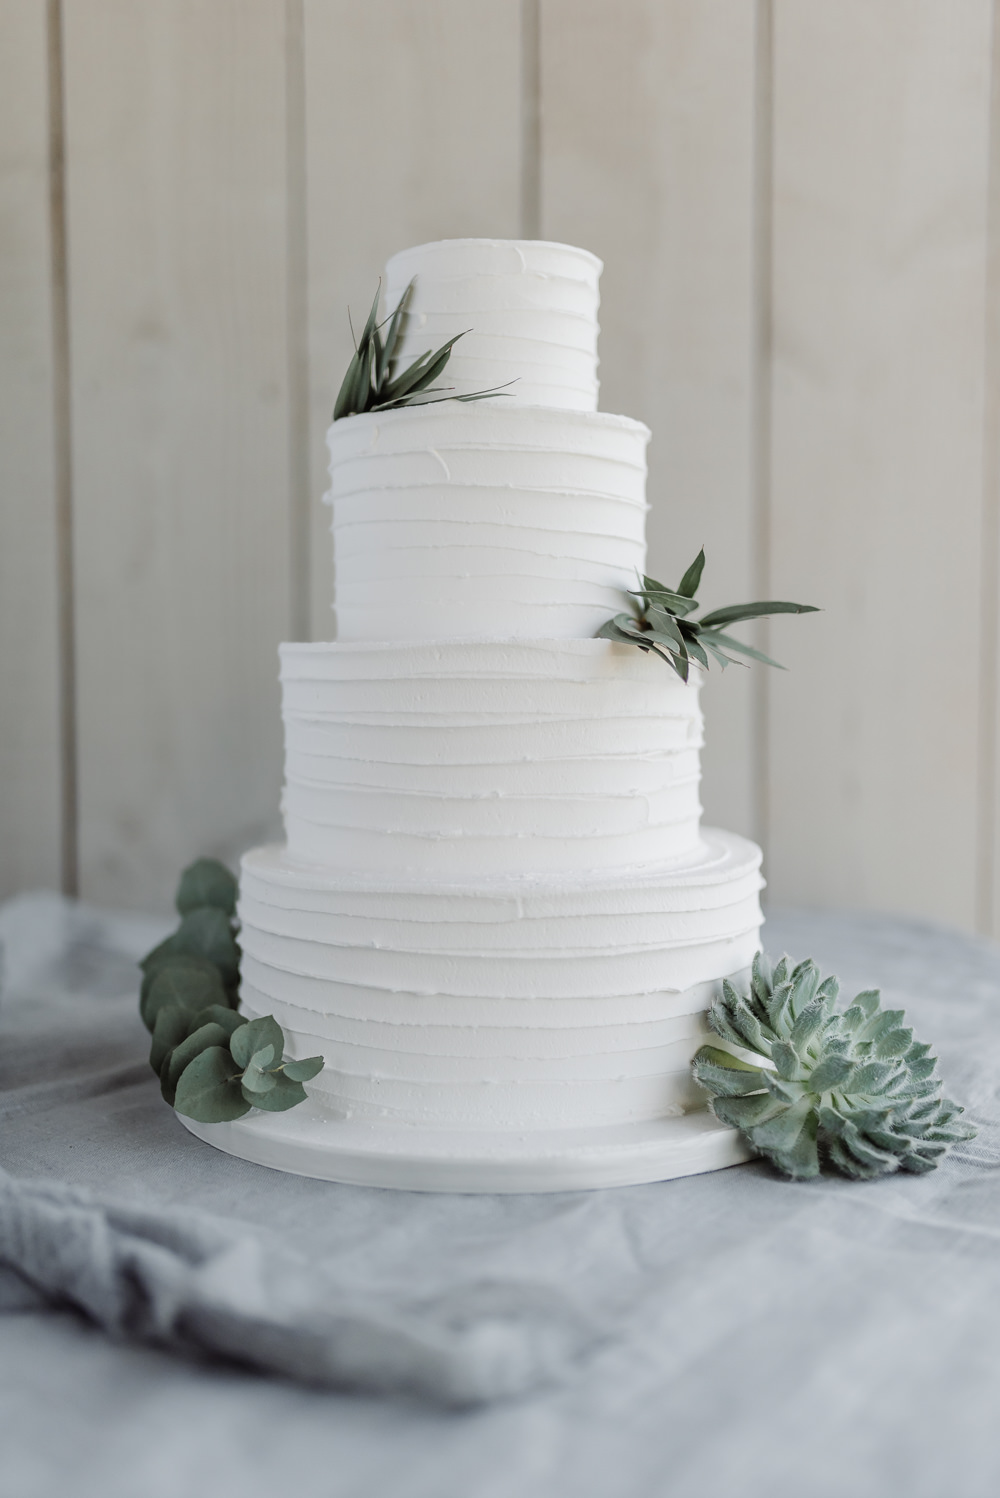 White Buttercream Iced Cake Foliage Succulents Grey Violet Wedding Ideas Chloe Ely Photography